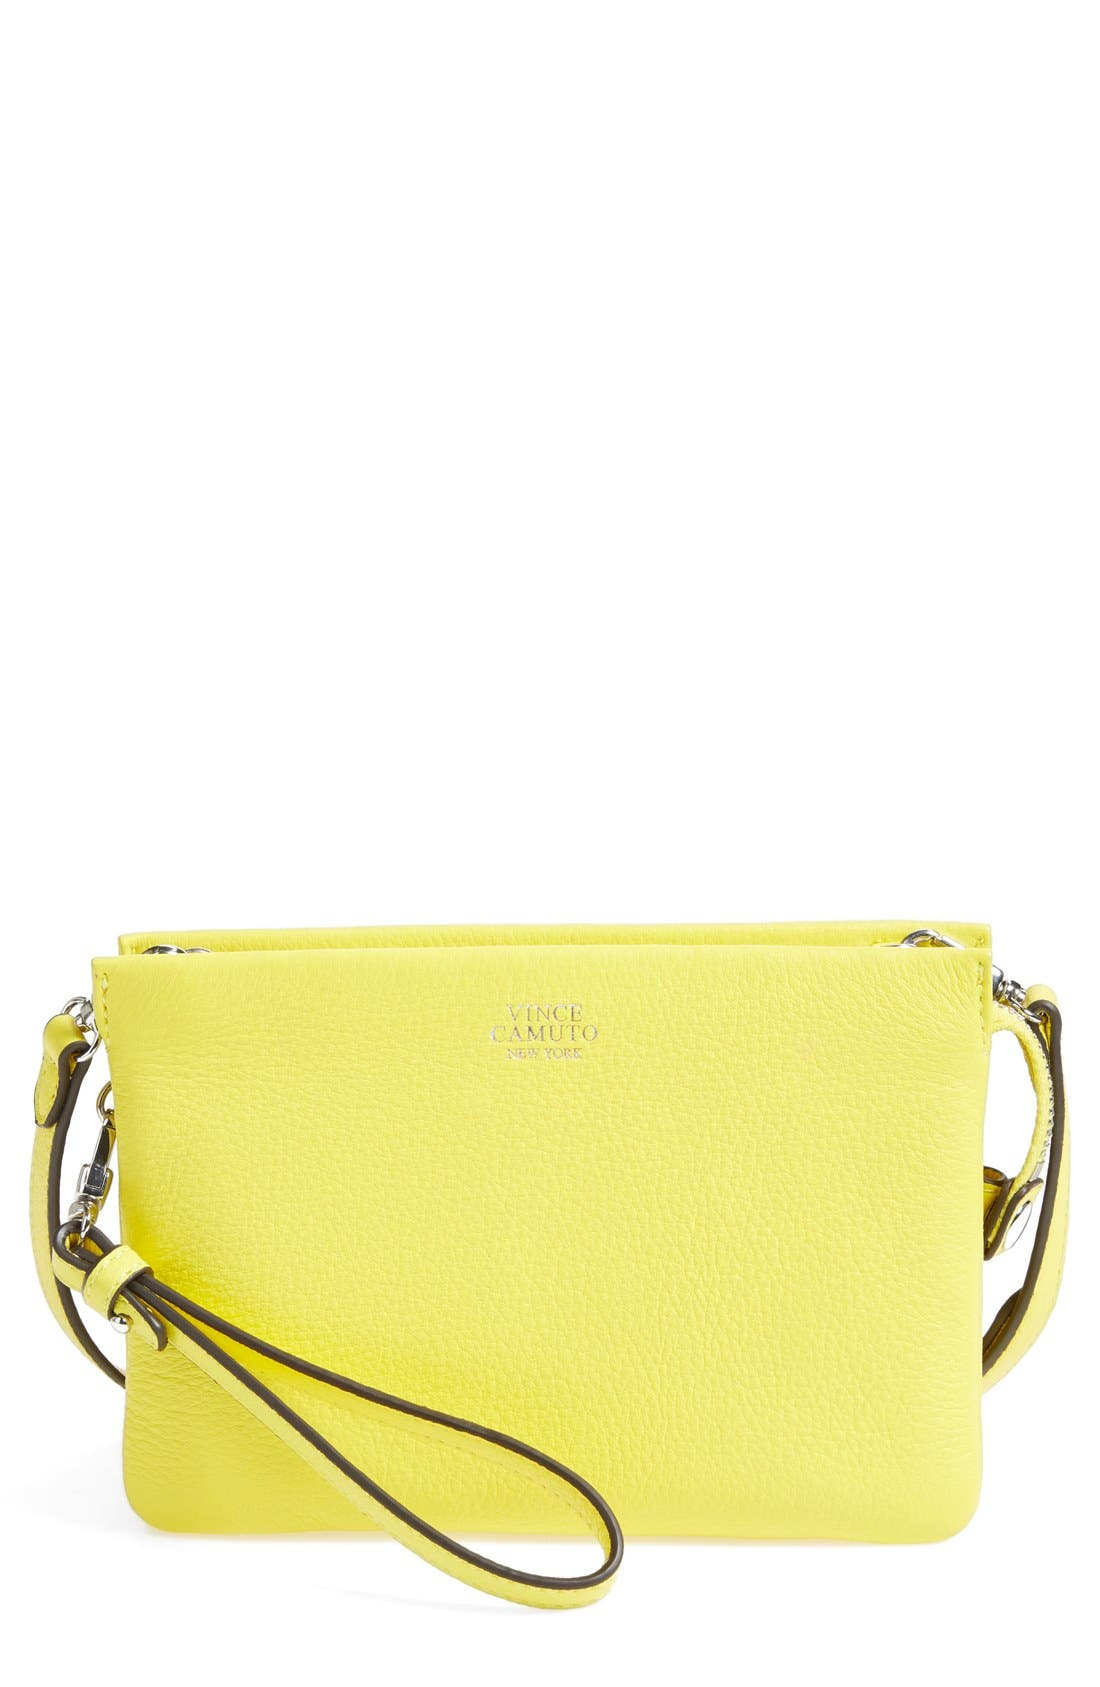 'Cami' Leather Crossbody Bag,                             Main thumbnail 29, color,